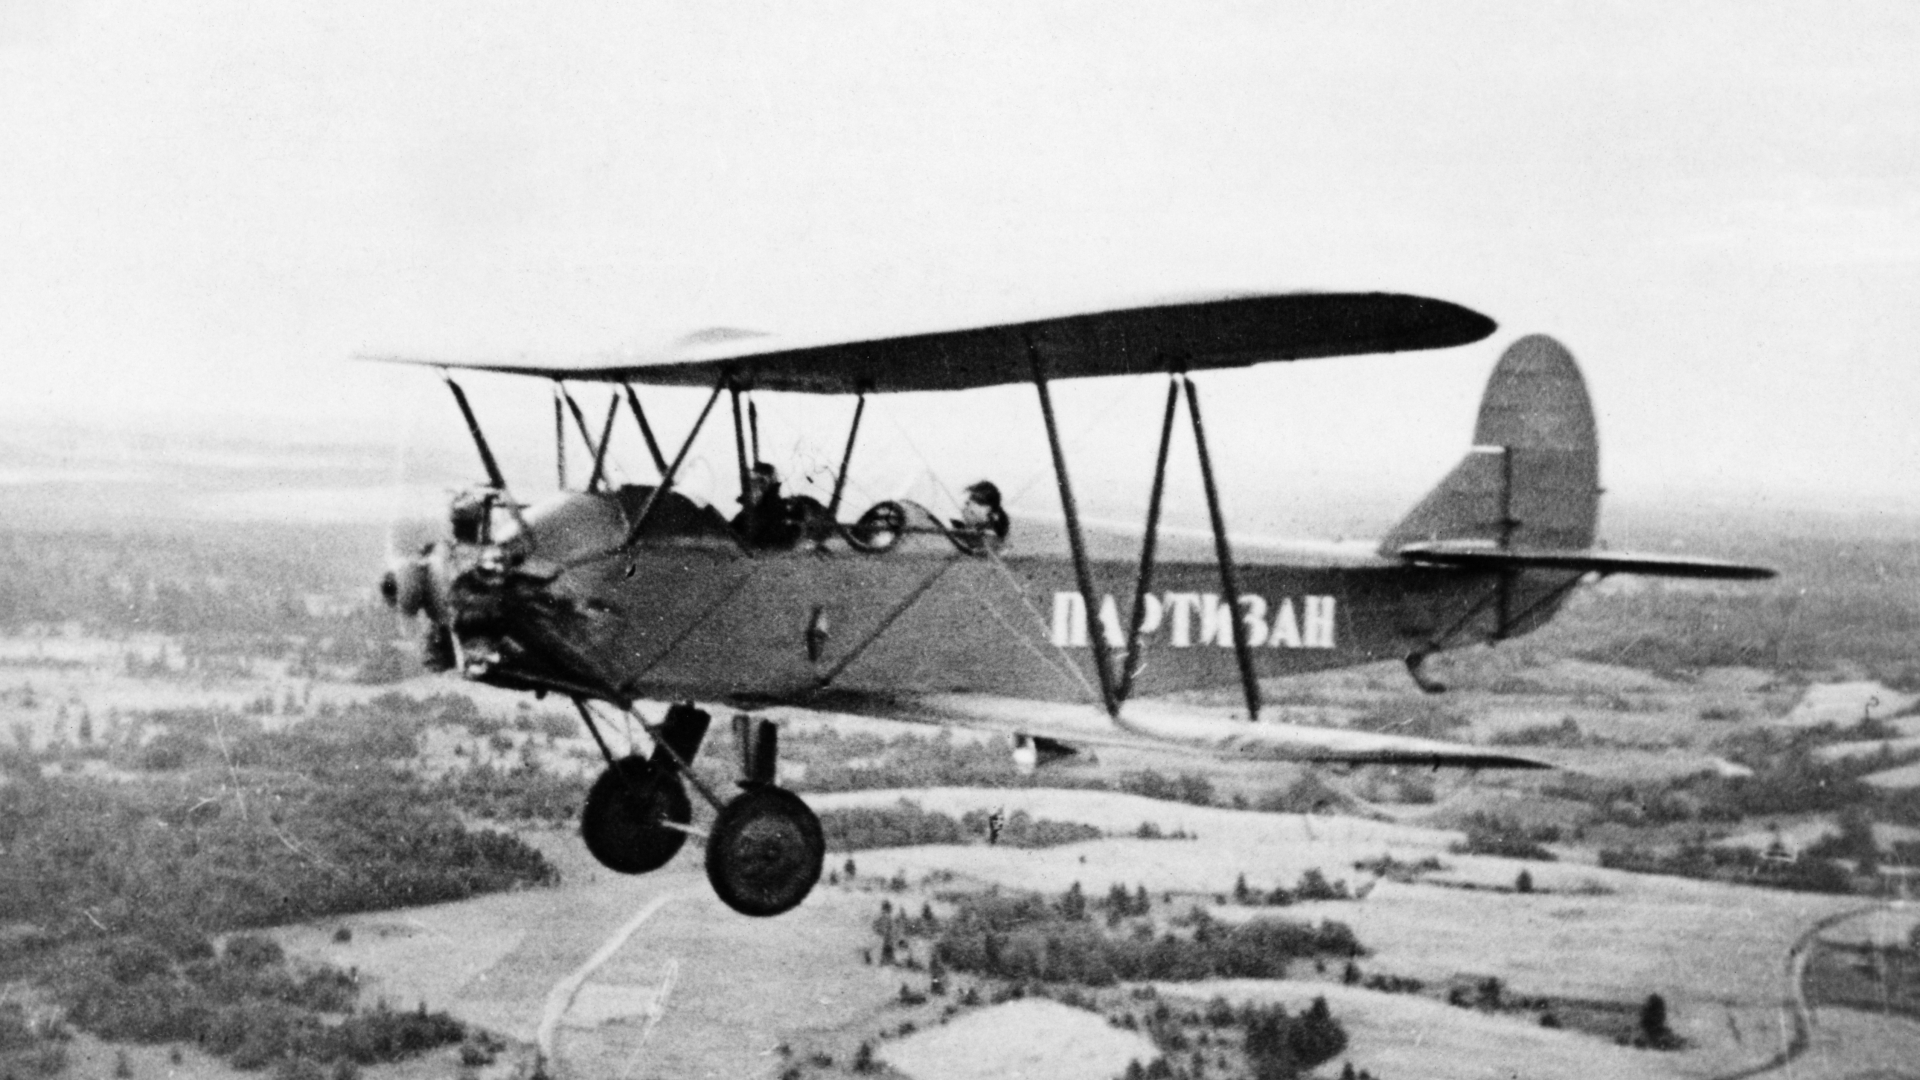 A partisan airplane, the Polikarpov Po-2, during World War II. (Photo by: Sovfoto/UIG via Getty Images)